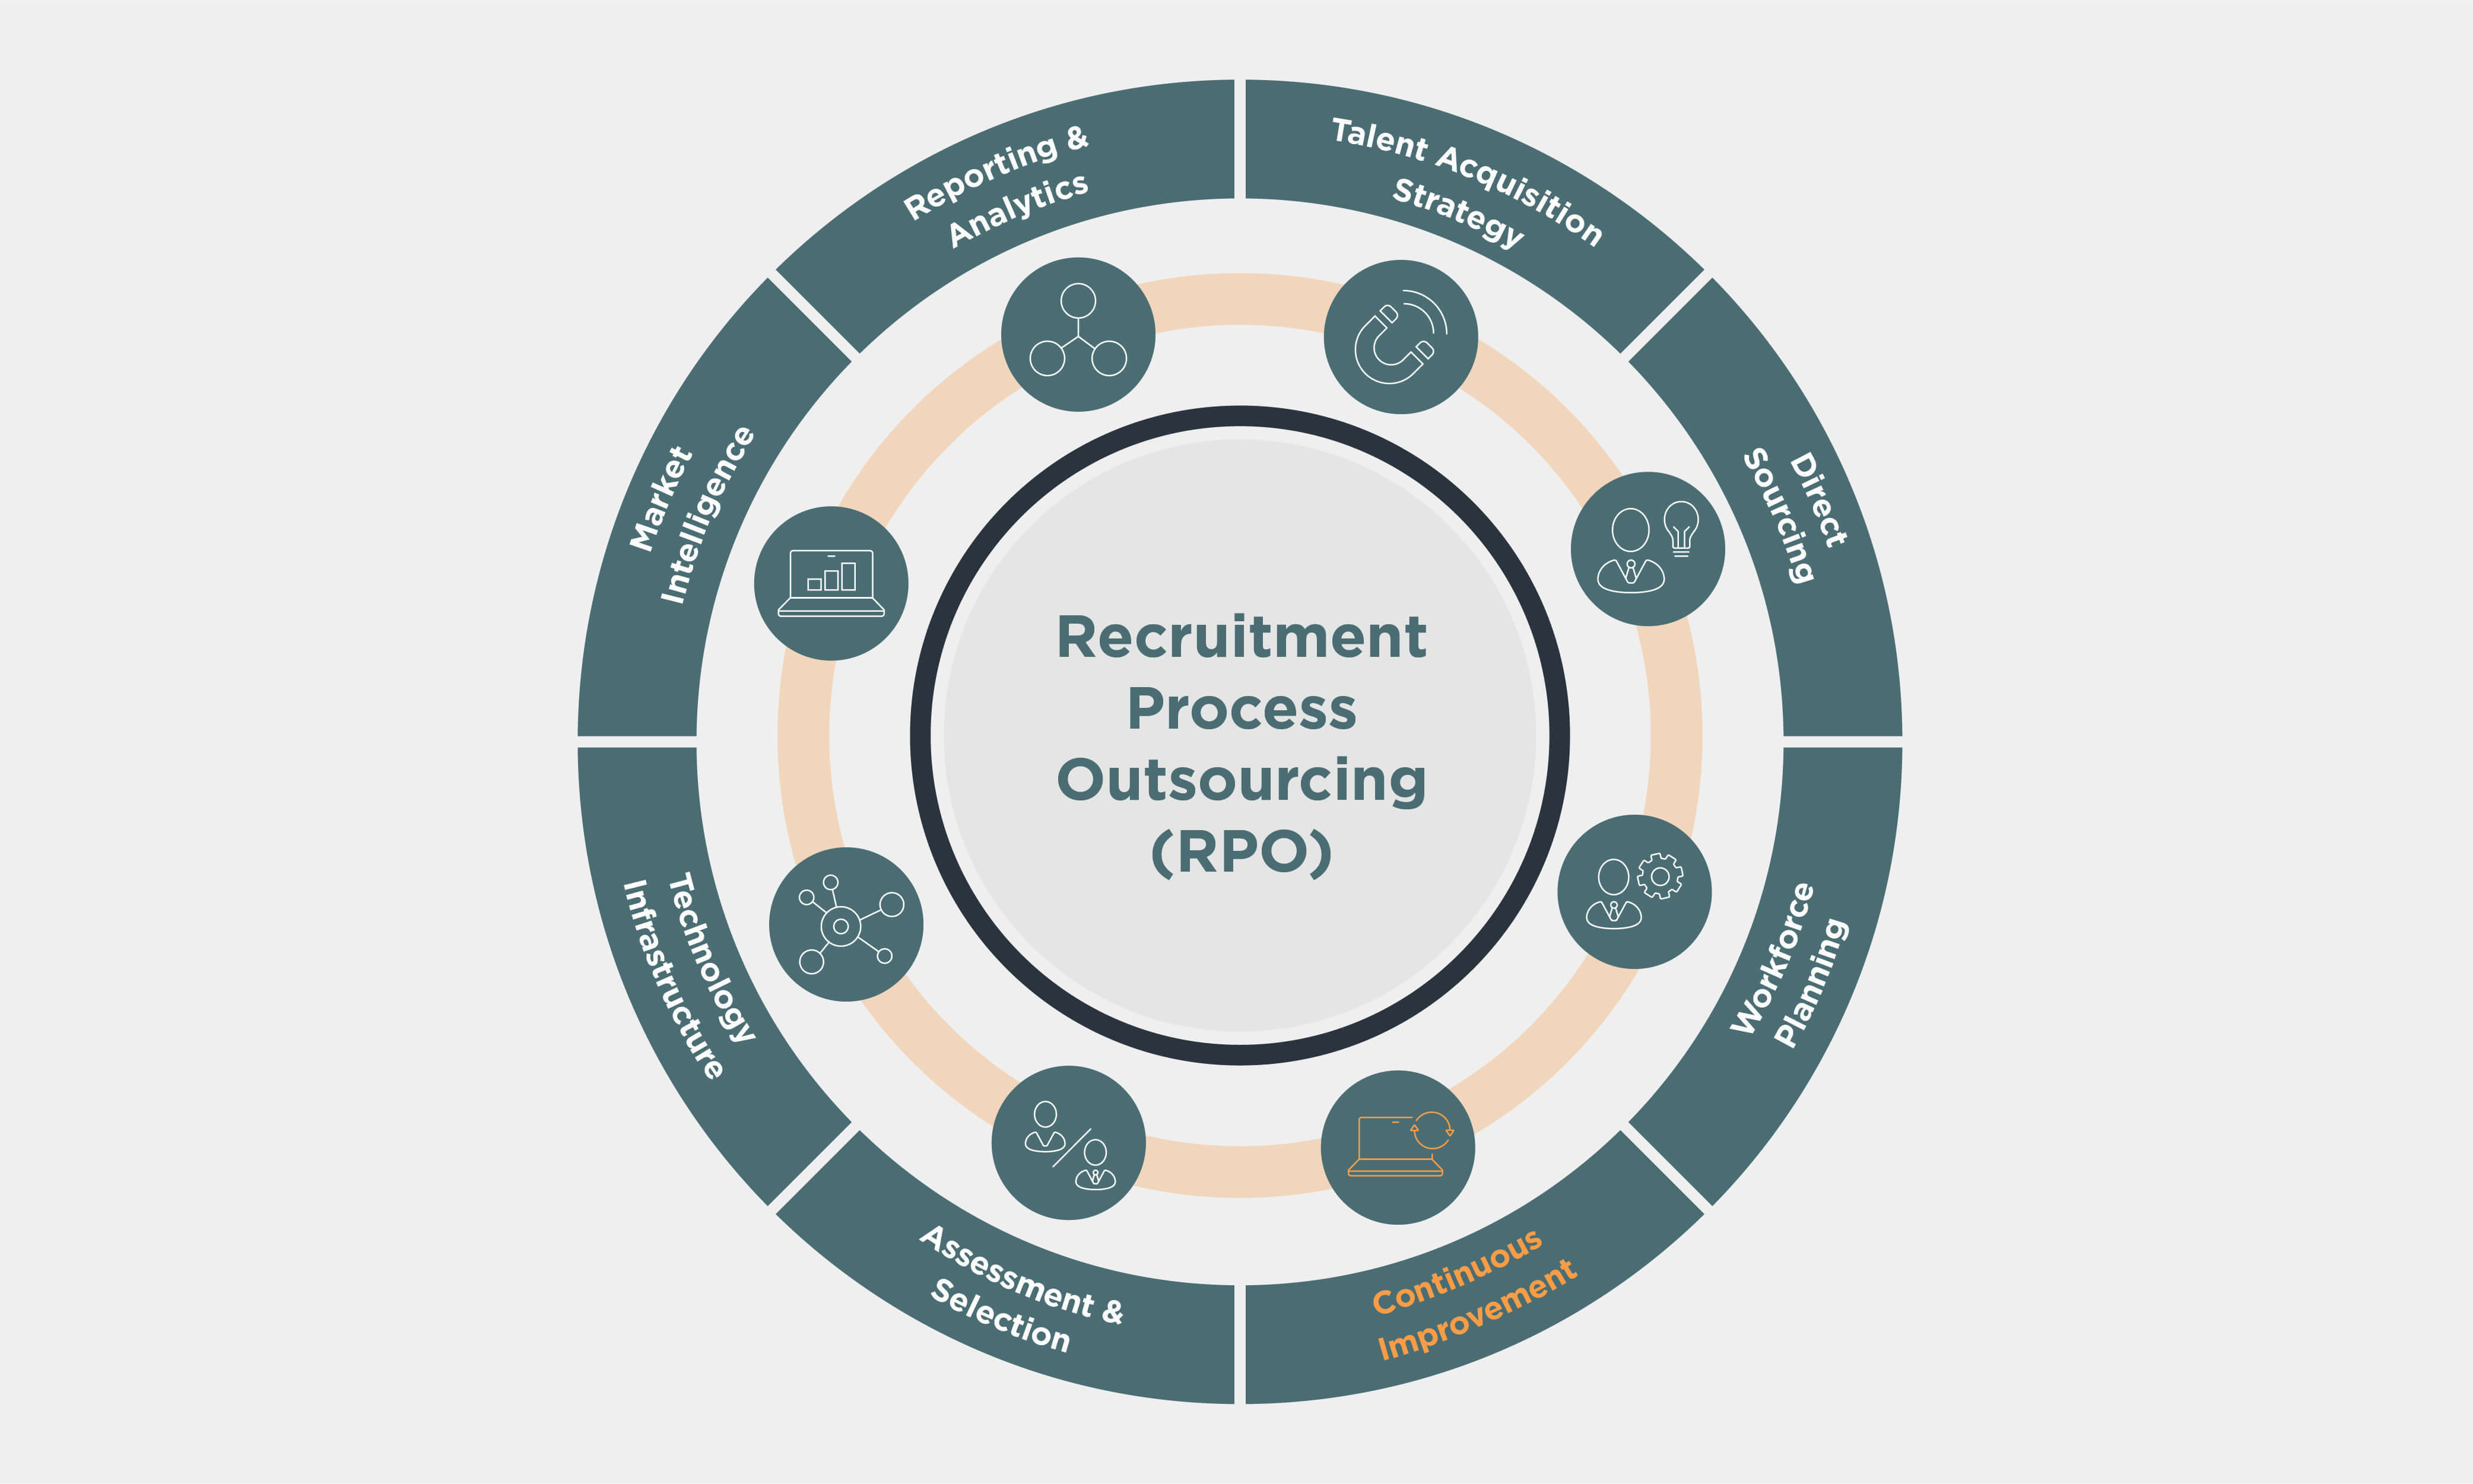 Recruitment Process Outsourcing (RPO) wheel with Continuous Improvement hlighted in orange